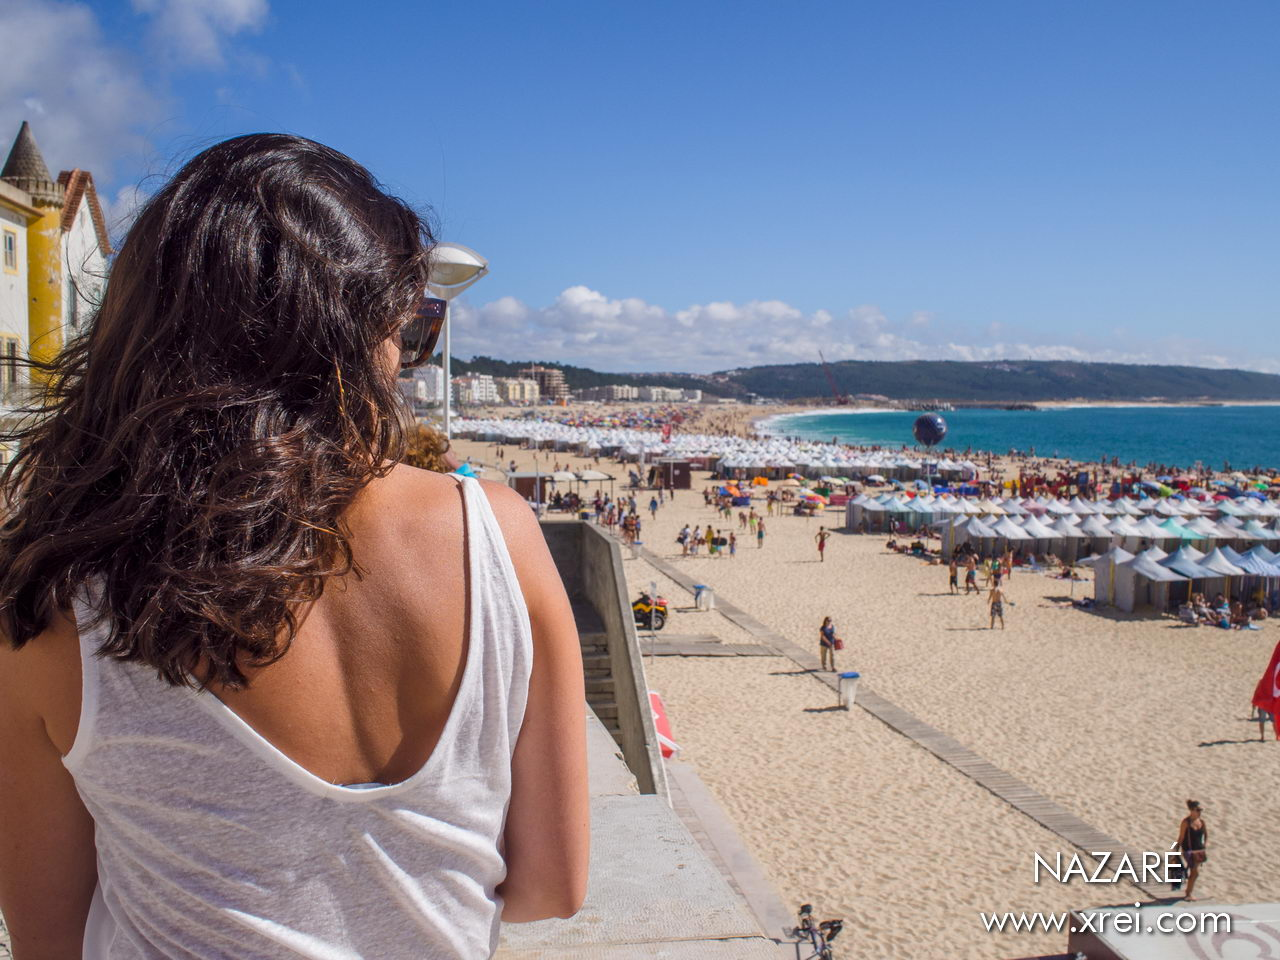 Praia da Nazaré, located in the lower part of the village of Nazaré, with a coastal avenue and an extensive sandy beach with a magnificent landscape of the Atlantic Ocean